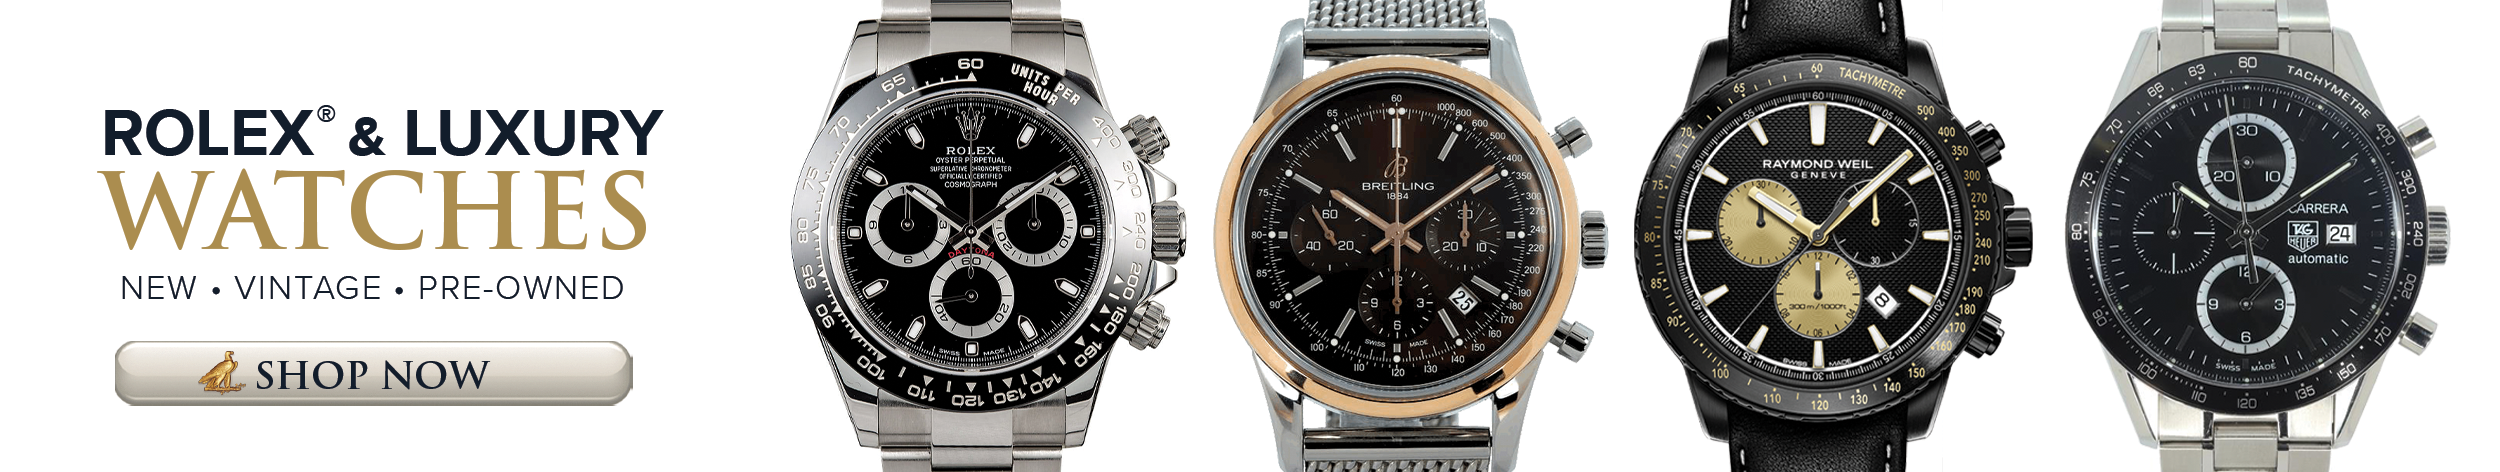 Rolex and Luxury Watches